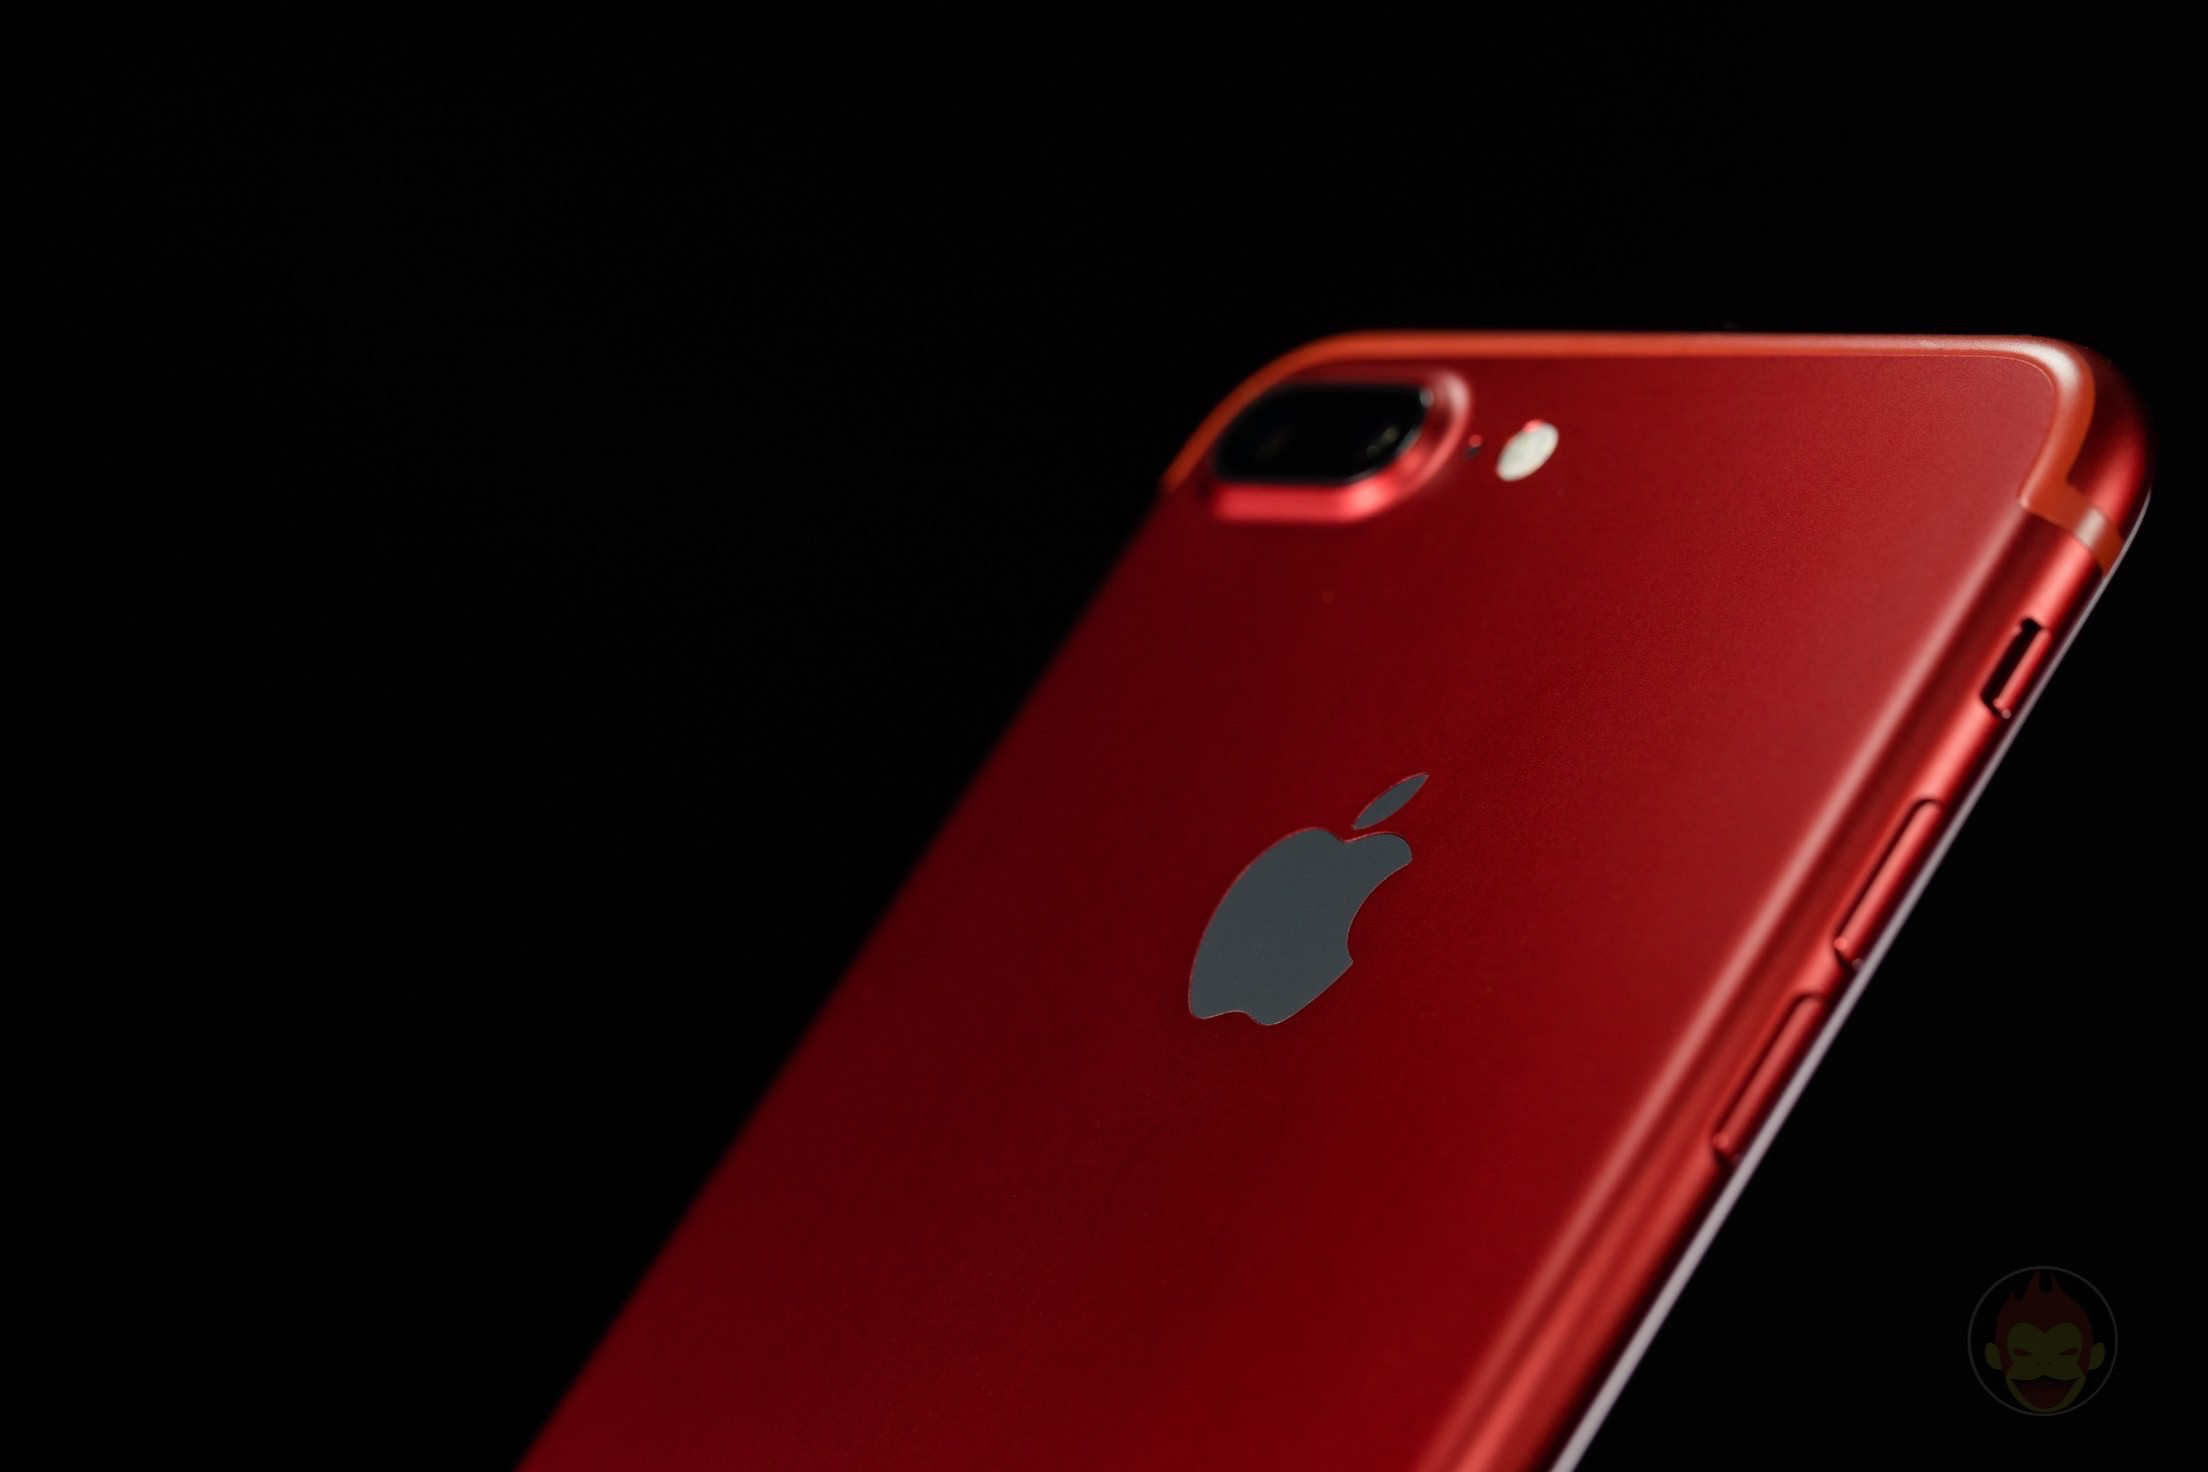 iPhone-7-Product-Red-Special-Edition-04.jpg